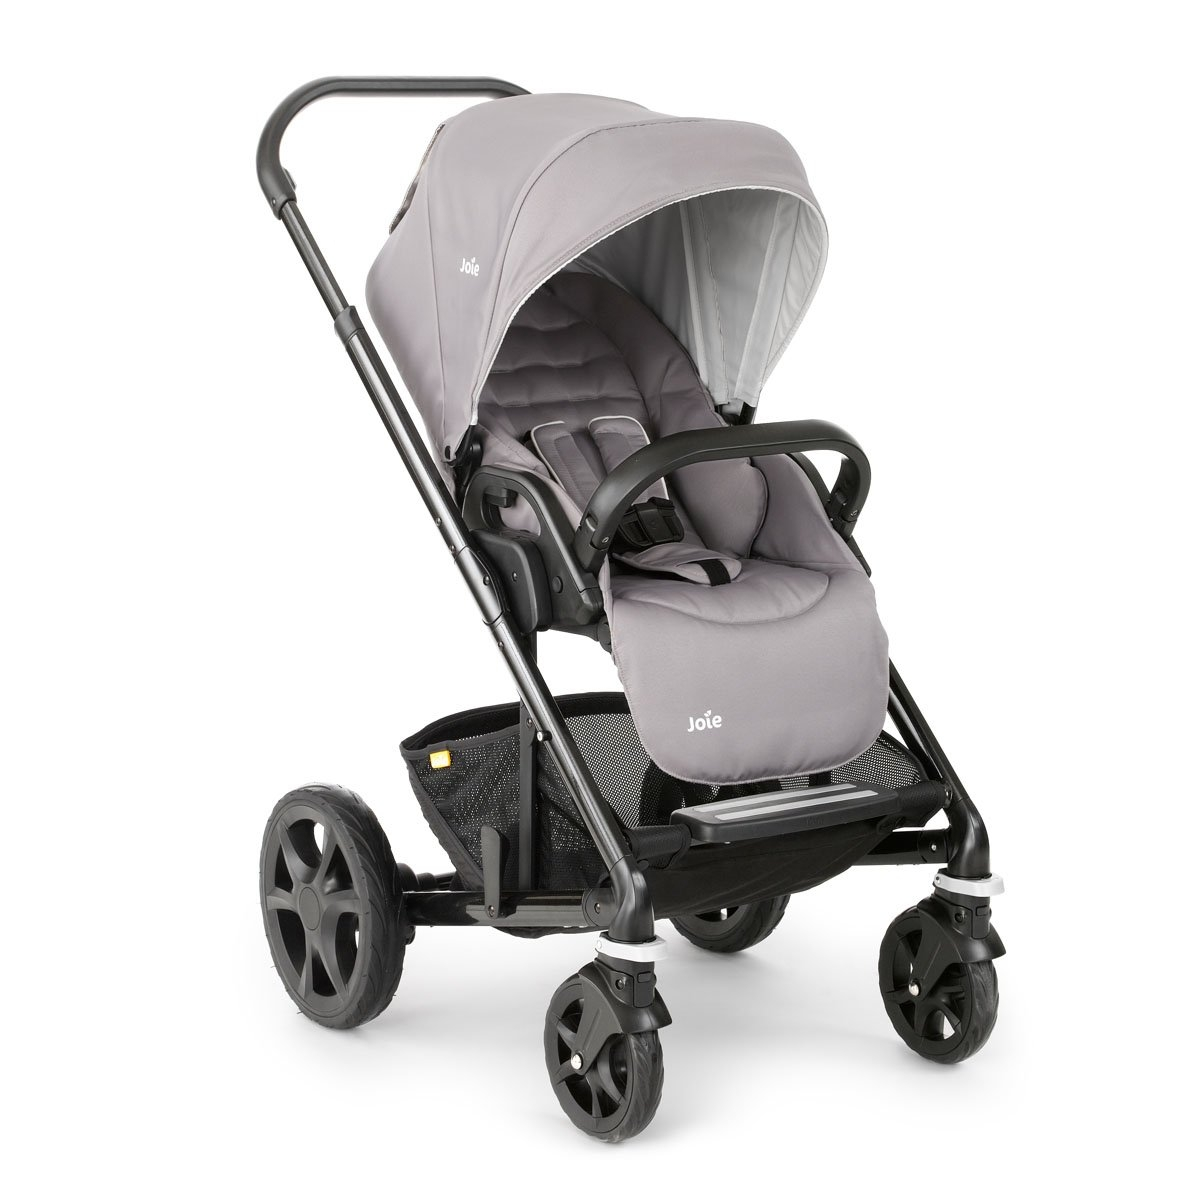 Ebay Kinderwagen Joie Joie Chrome Stroller In Mayfair At Babysecurity Quotes Of